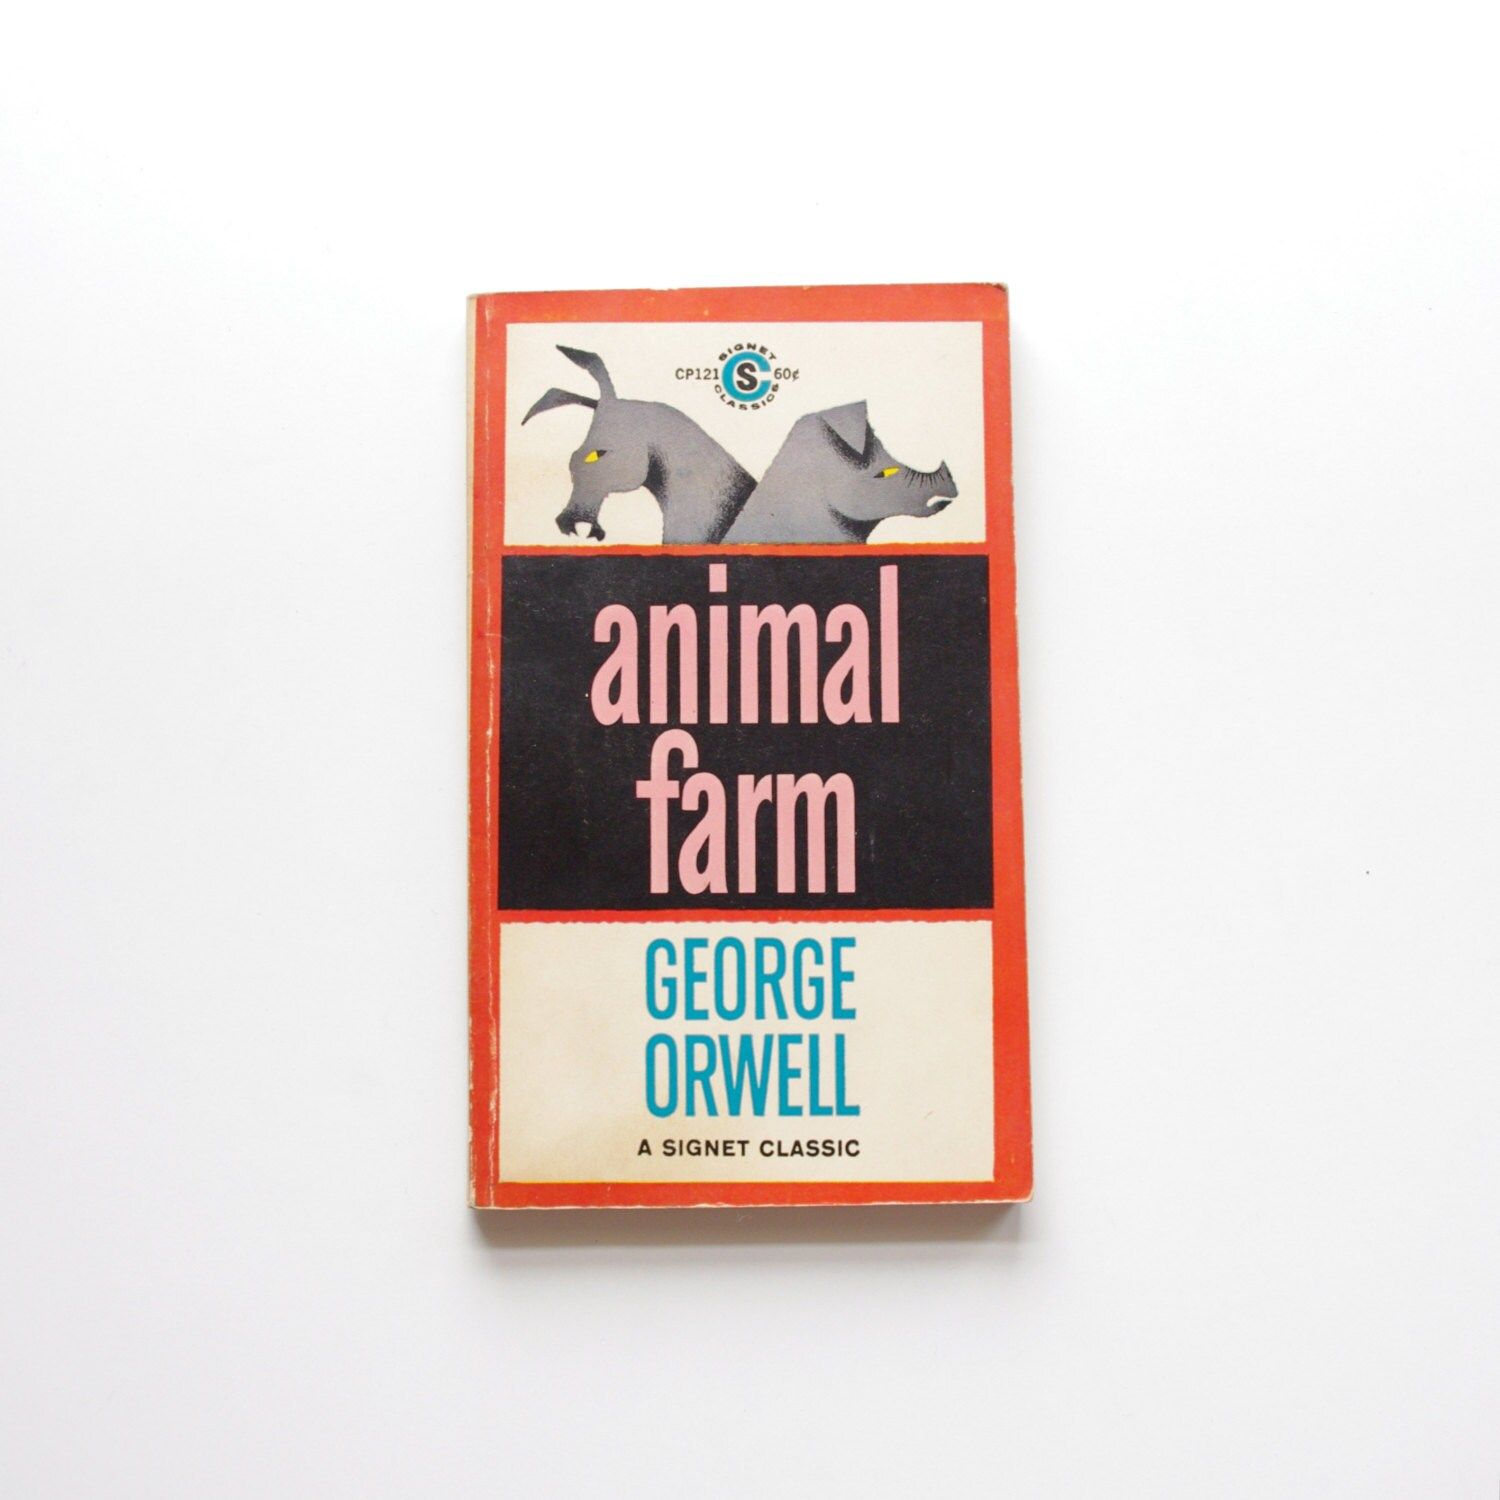 a review of george orwells satire animal farm Here's a description of animal farm from amazon: george orwell's timeless and timely allegorical novel—a scathing satire on a downtrodden society's blind march towards totalitarianism.